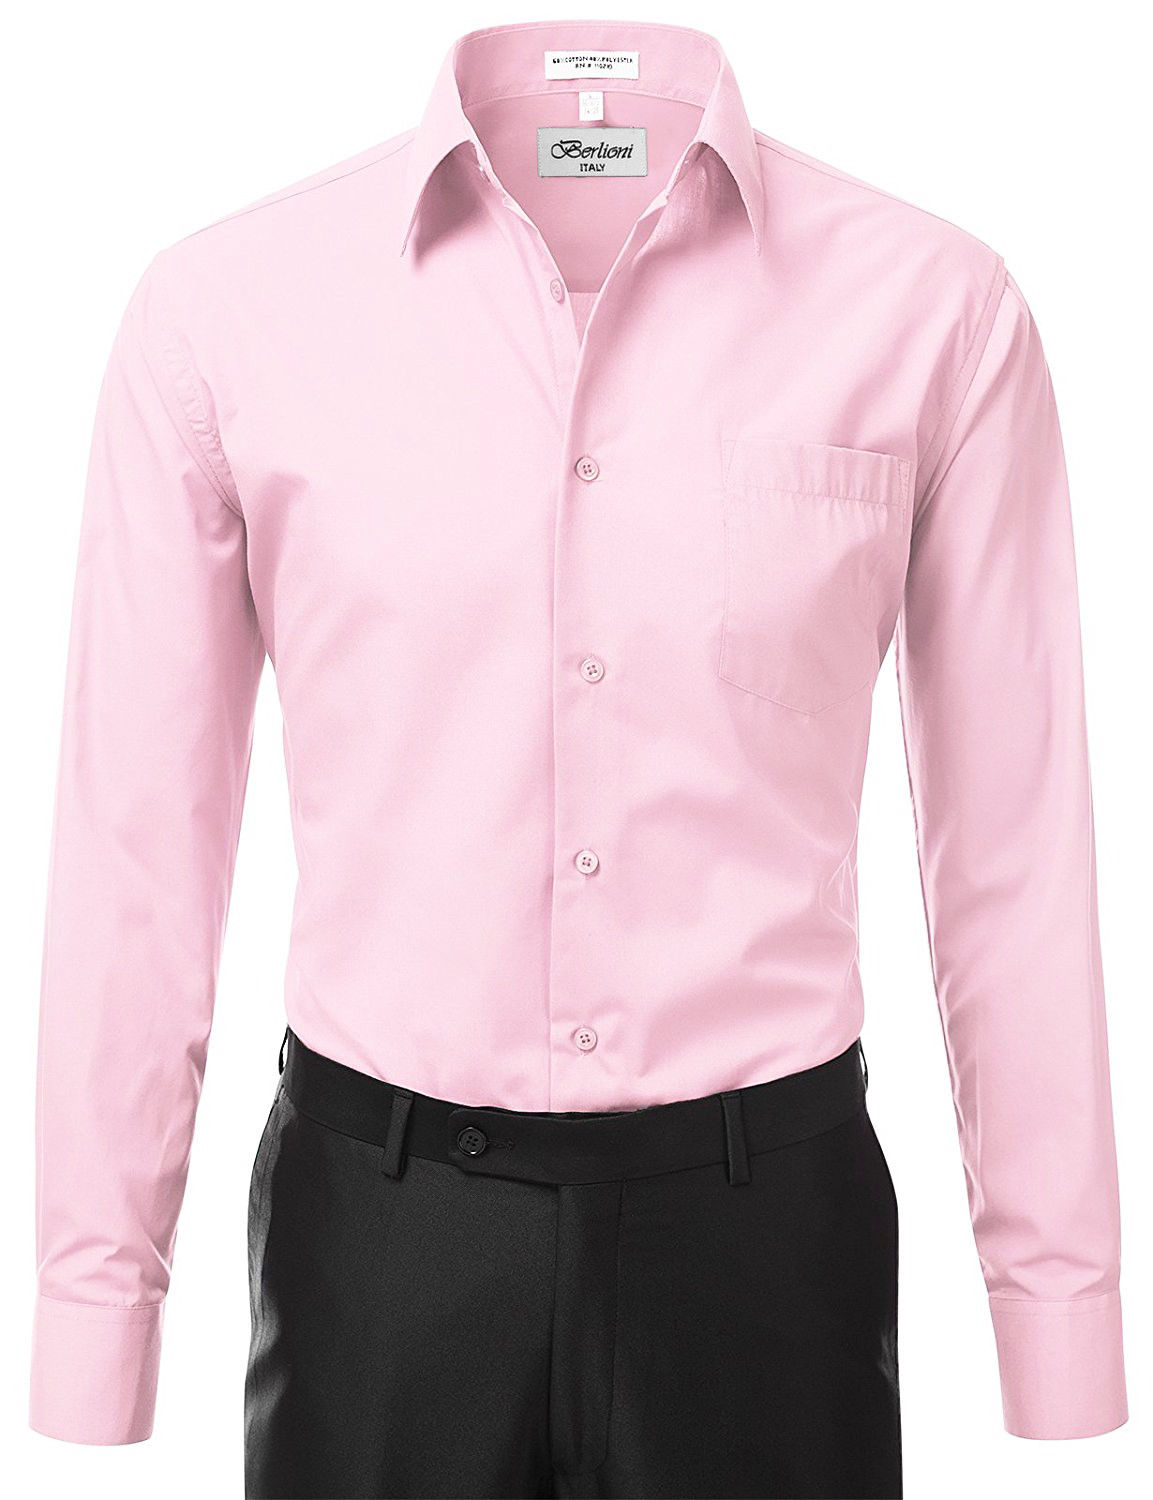 Berlioni-Italy-Men-039-s-Premium-Classic-French-Convertible-Cuff-Solid-Dress-Shirt thumbnail 12